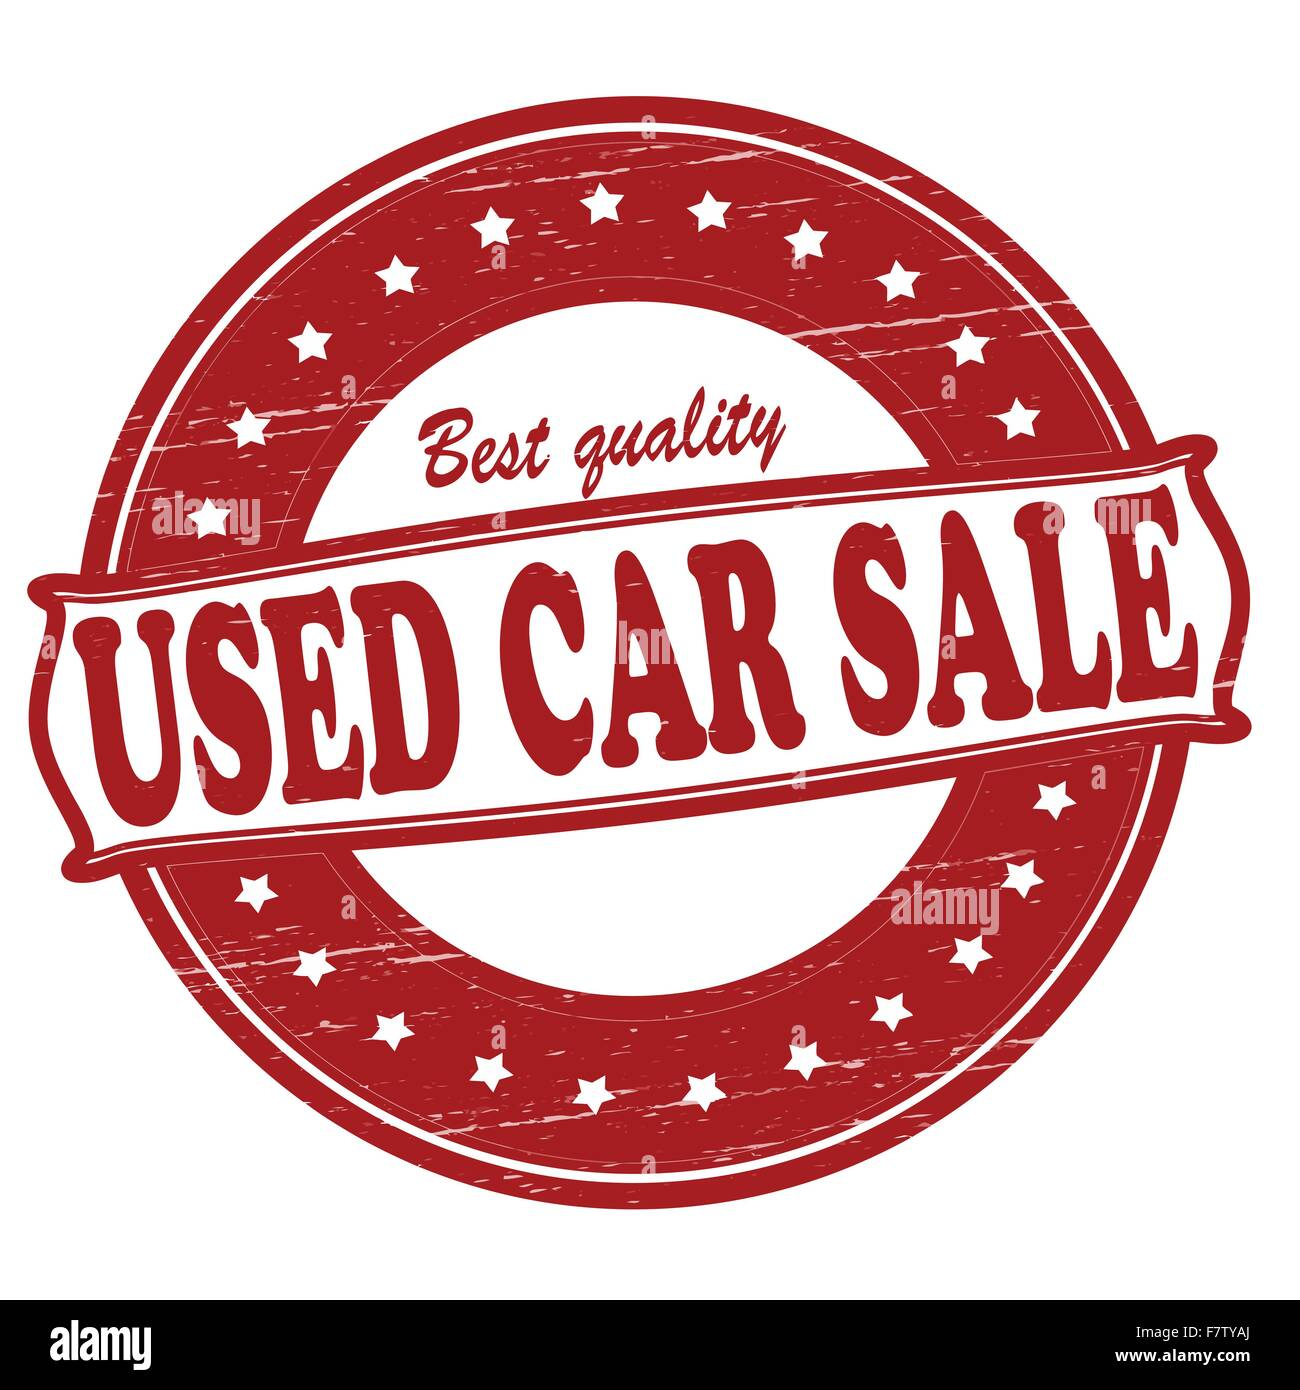 Used car sale - Stock Vector